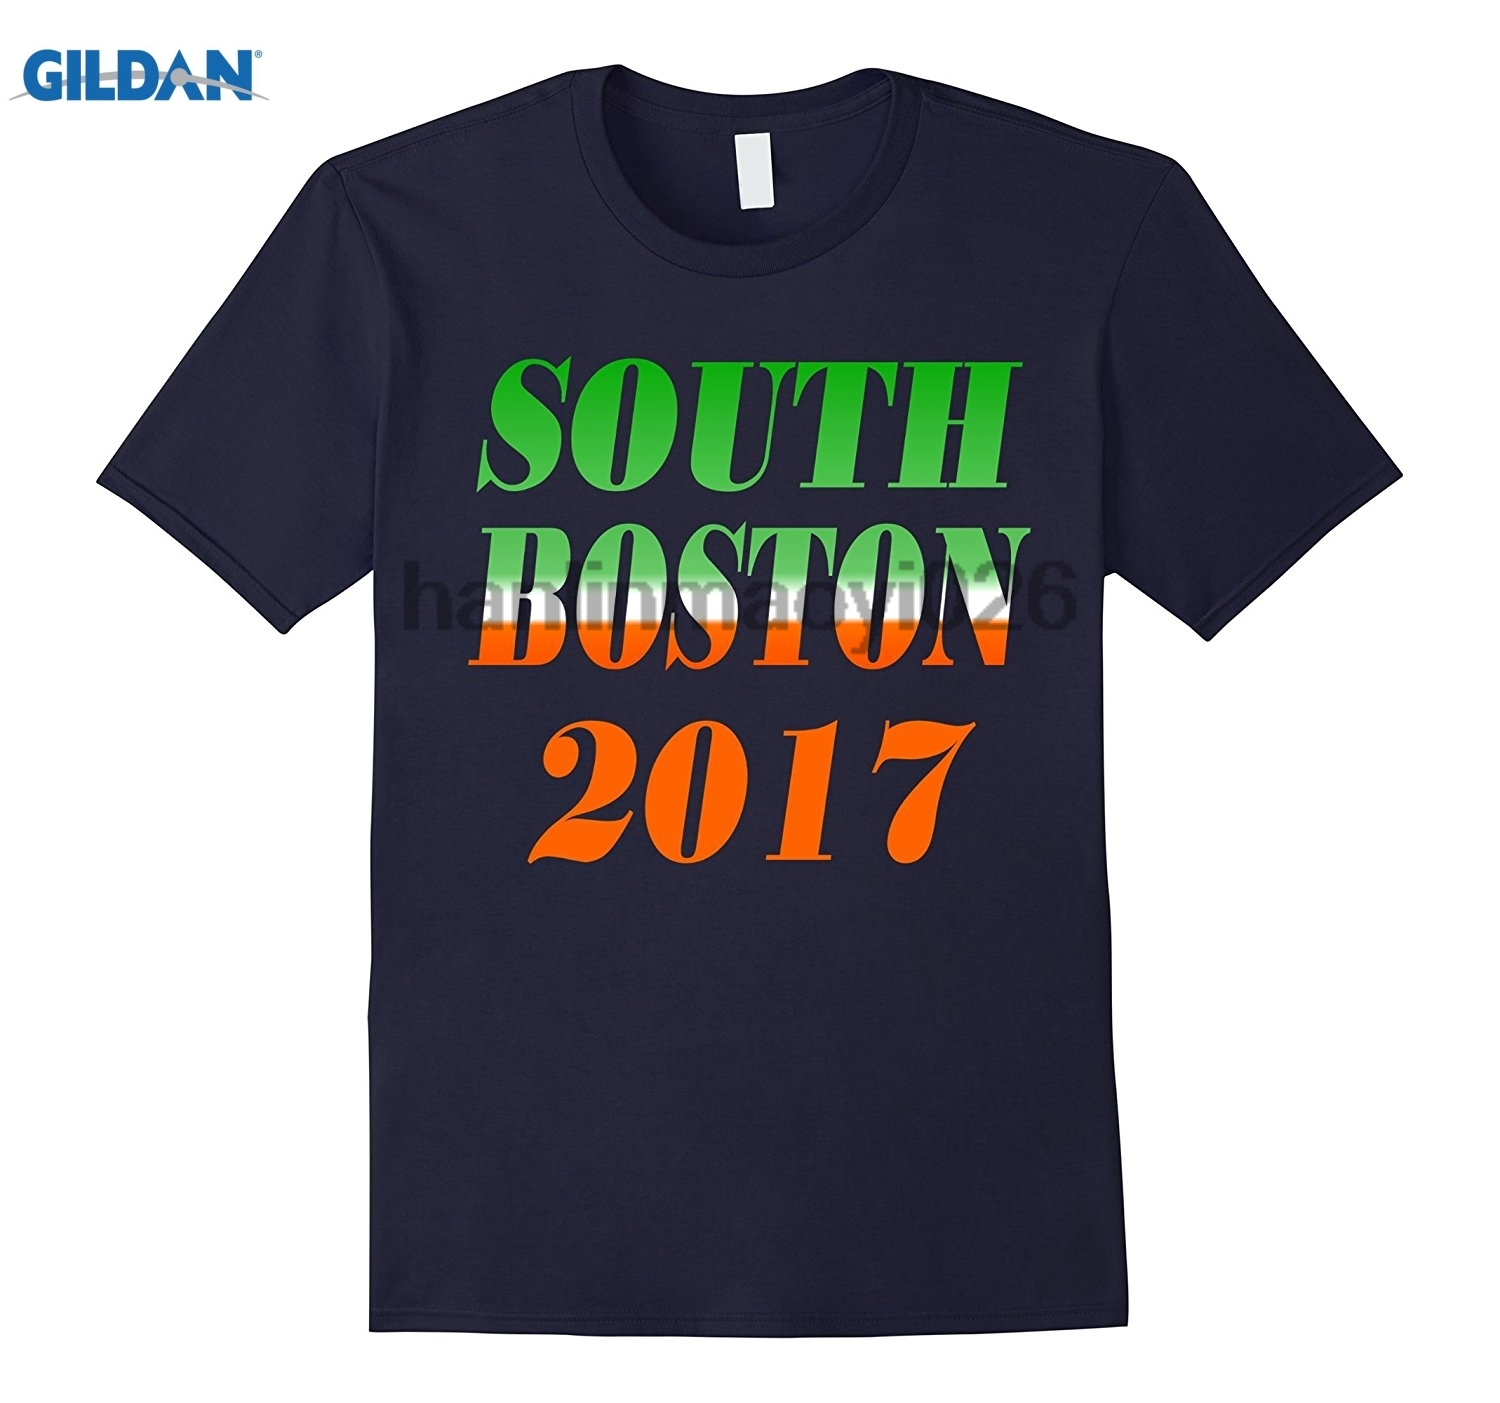 GILDAN South Boston 2018 Saint Patricks Day T-Shirt ...